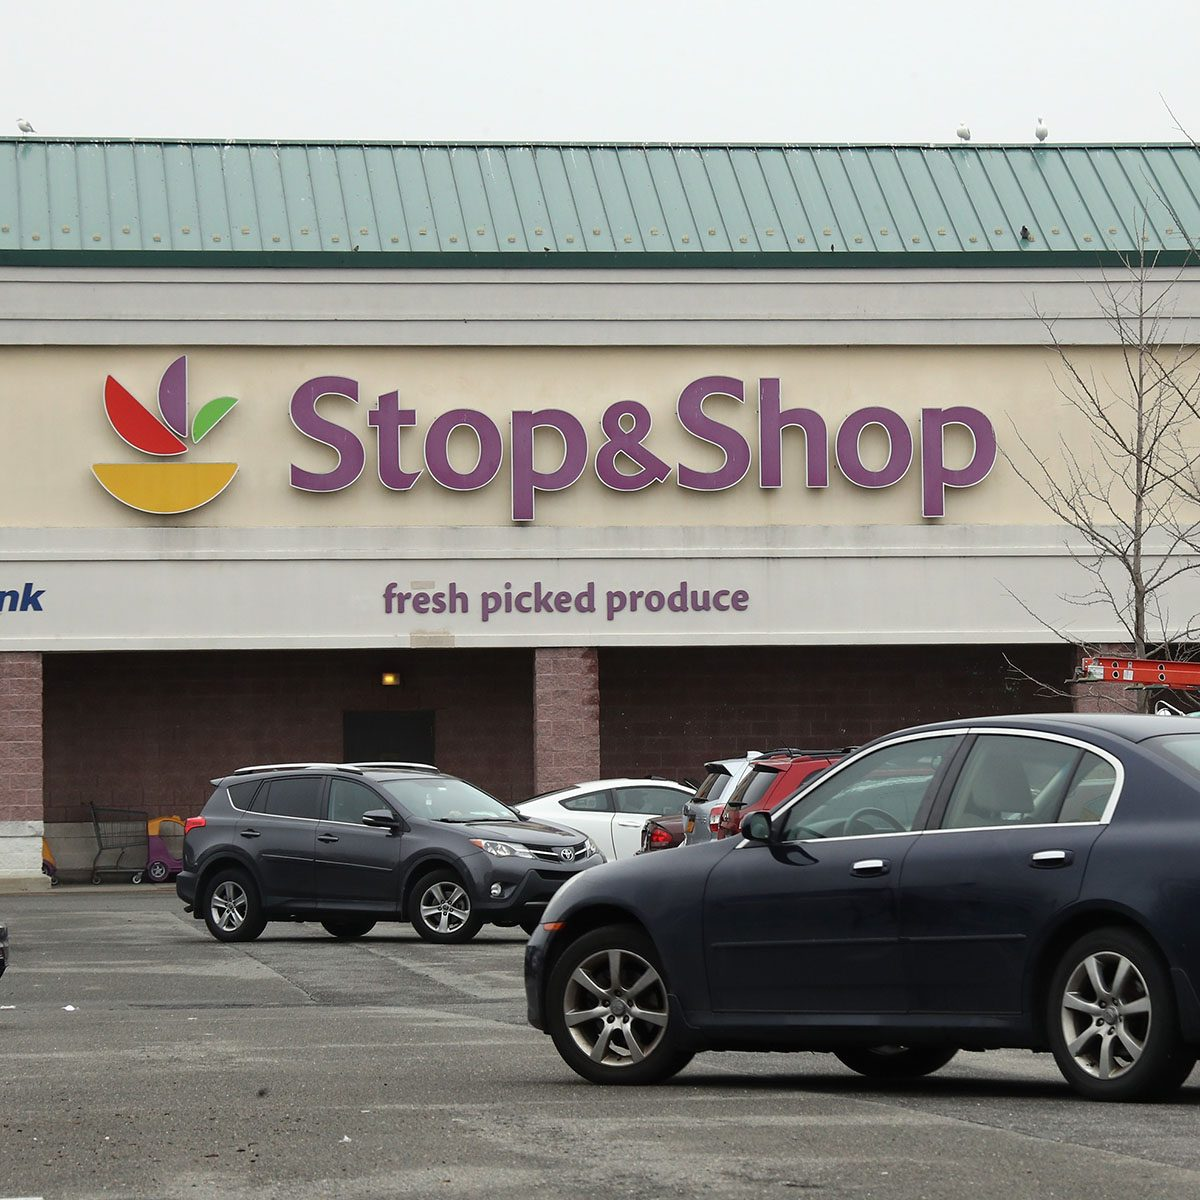 HICKSVILLE, NEW YORK - MARCH 20: Shoppers head for the Stop & Shop grocery store on March 20, 2020 in Hicksville, New York. The World Health Organization declared the coronavirus (COVID-19) a global pandemic on March 11th. (Photo by Bruce Bennett/Getty Images)